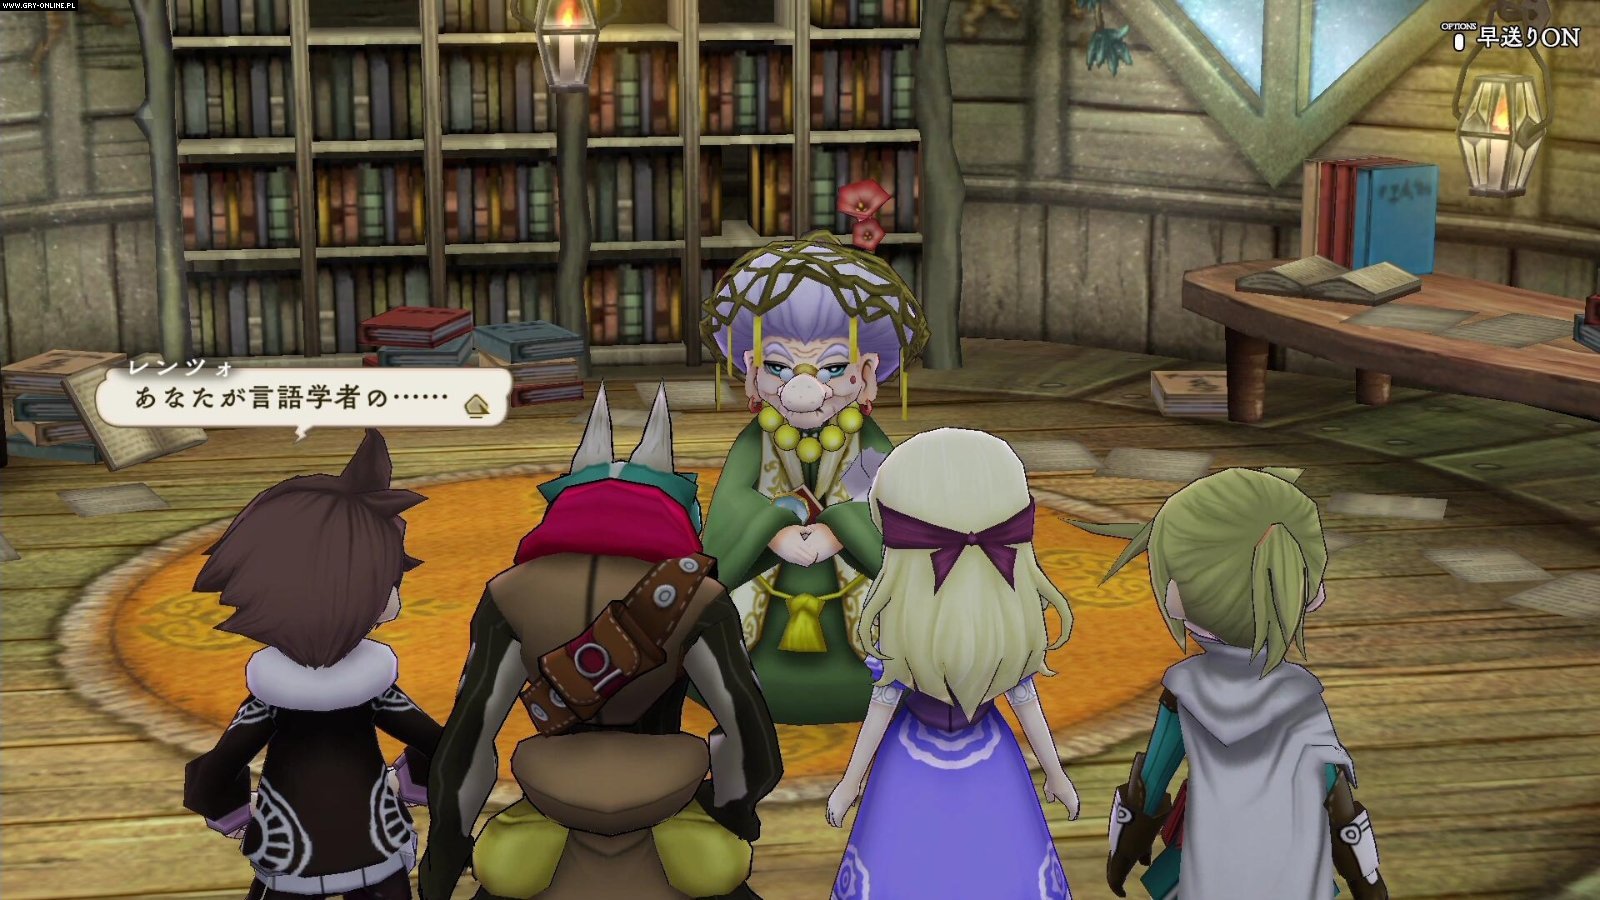 The Alliance Alive HD Remastered PC, PS4, Switch Games Image 56/70, Cattle Call, NIS America